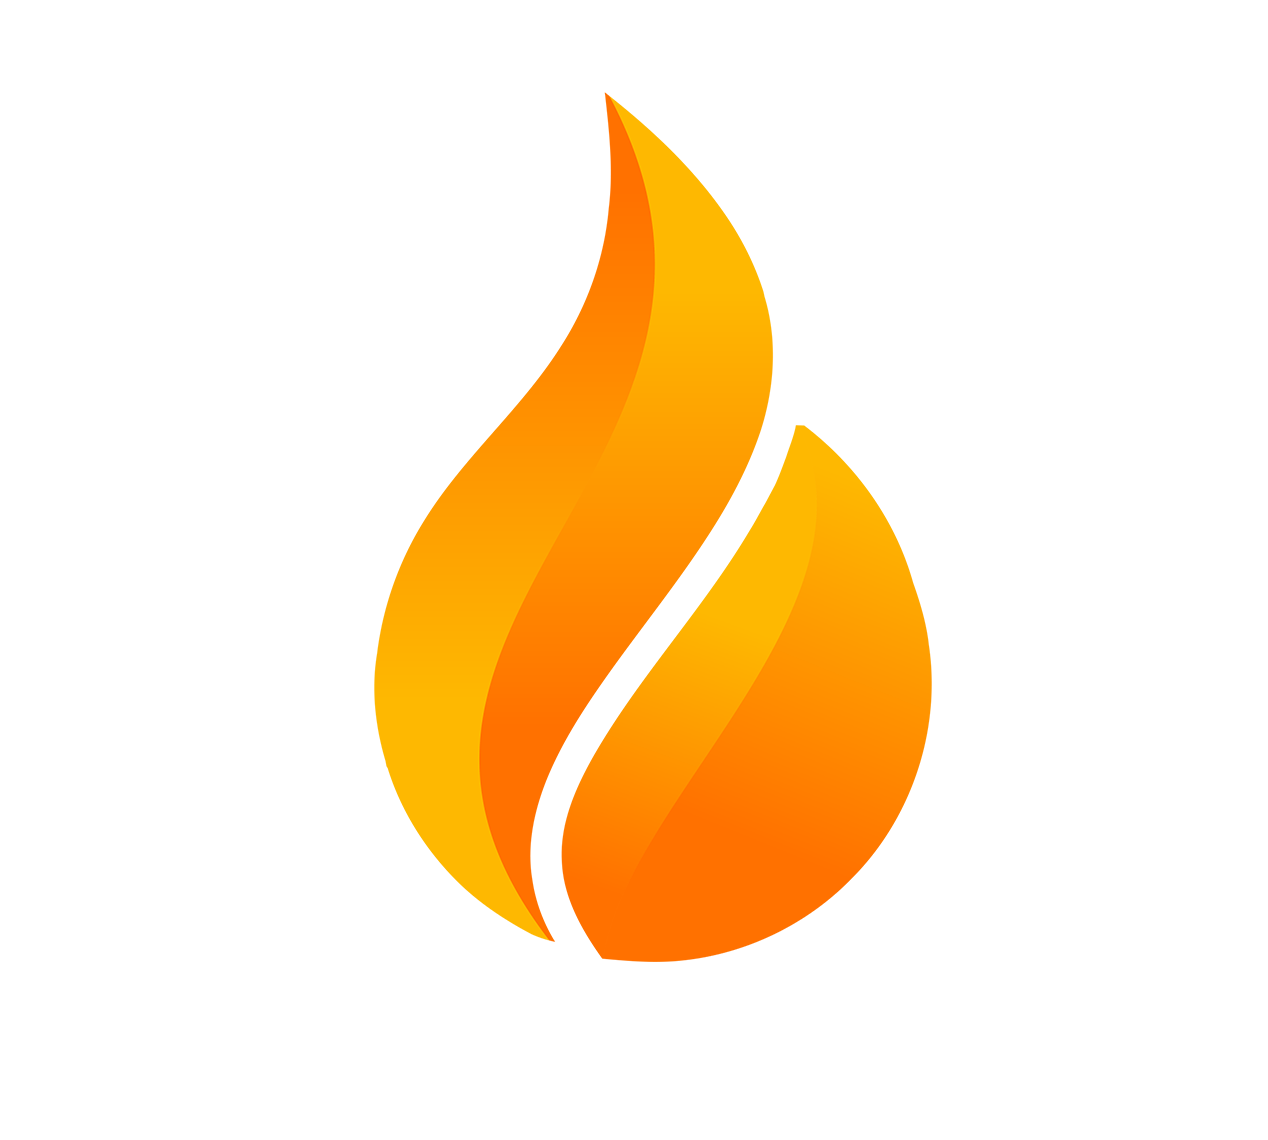 Flame Logo Transparent Background No Undershadow.png